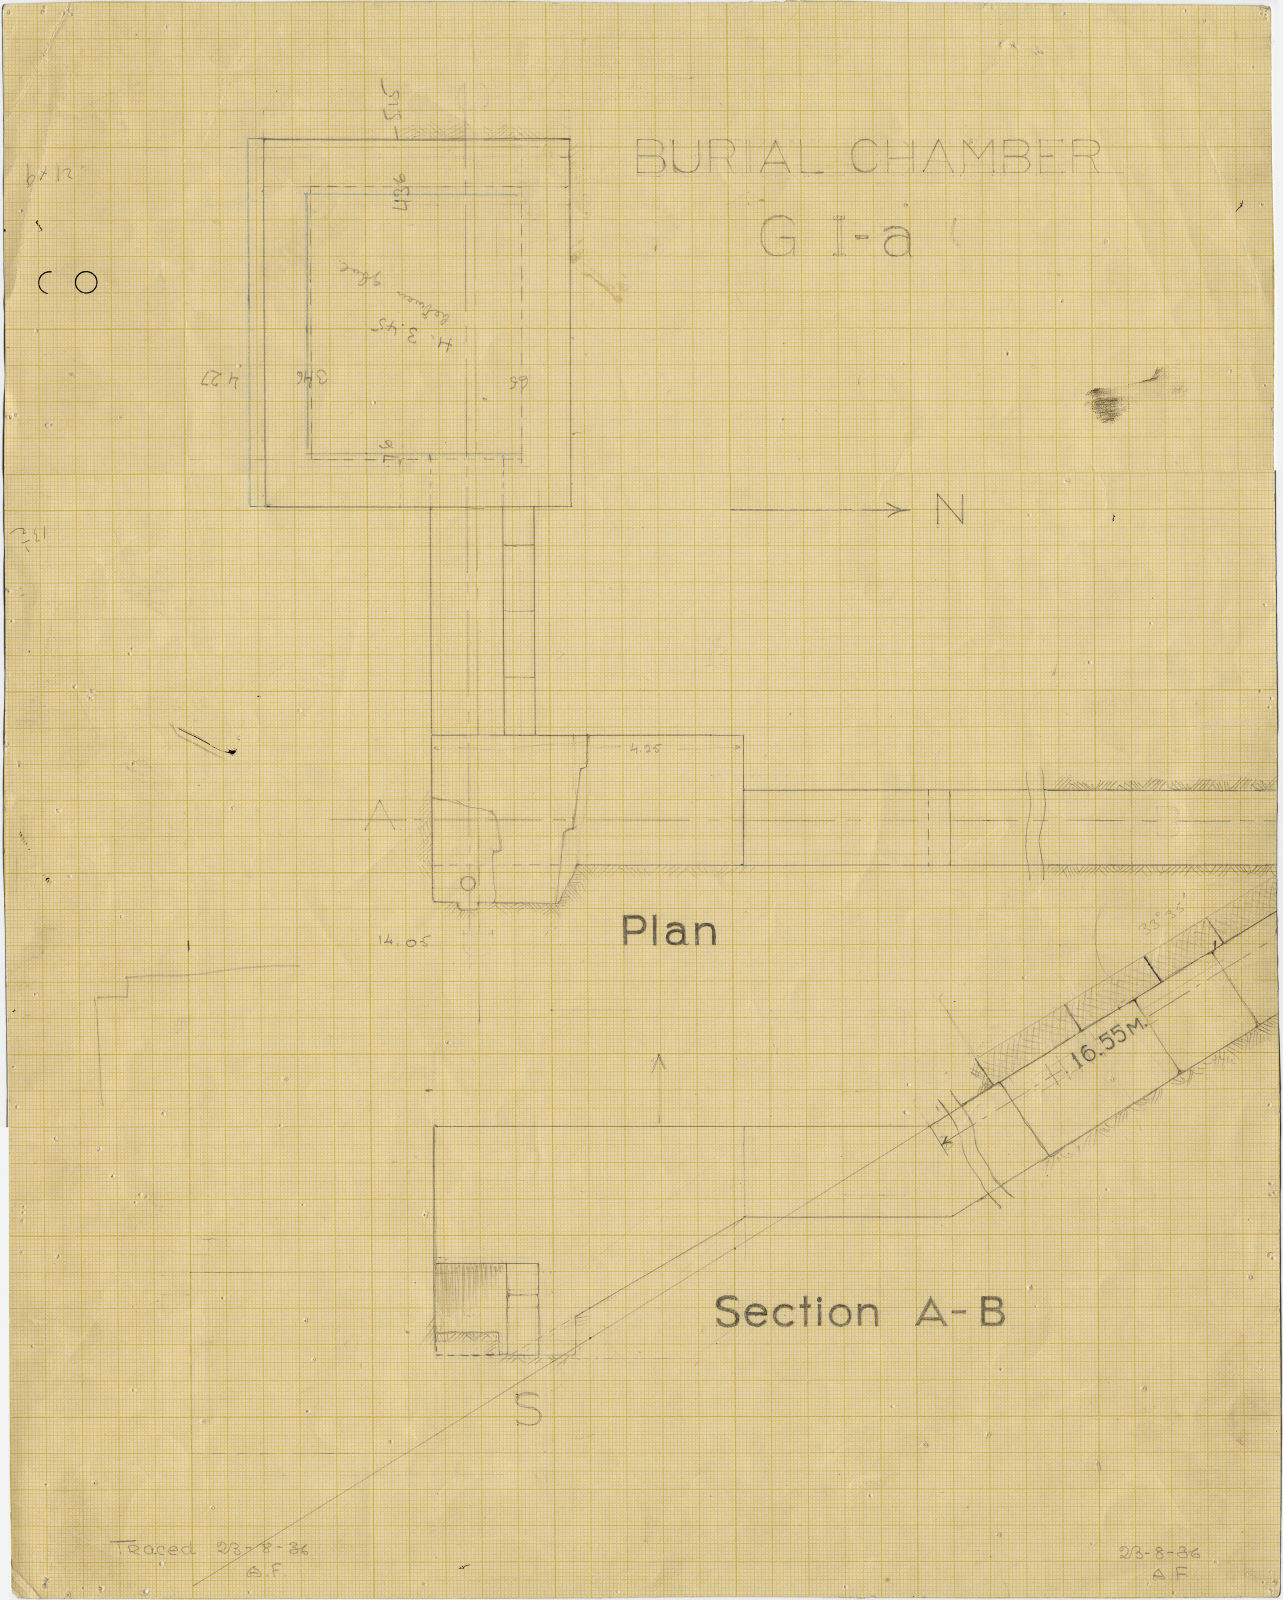 Maps and plans: G I-a burial chamber, Plan and section